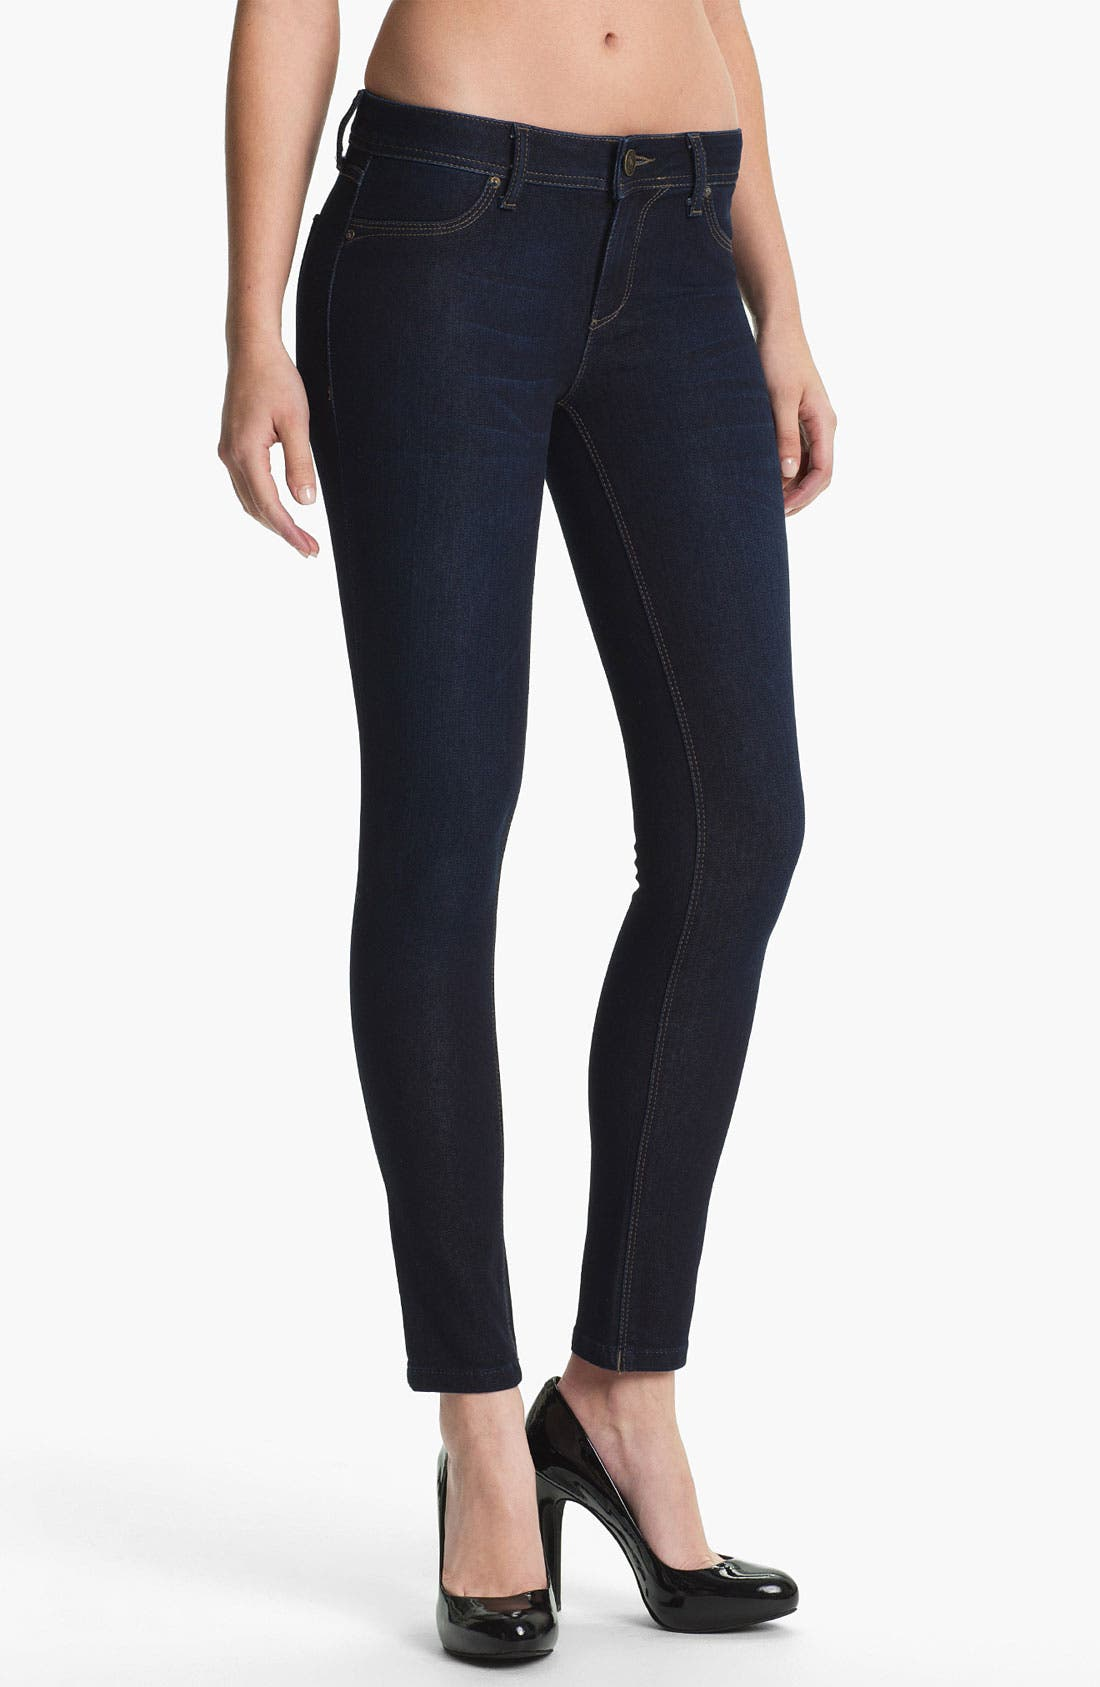 Main Image - DL1961 'Emma' X-Fit Stretch Denim Skinny Jeans (Skye)